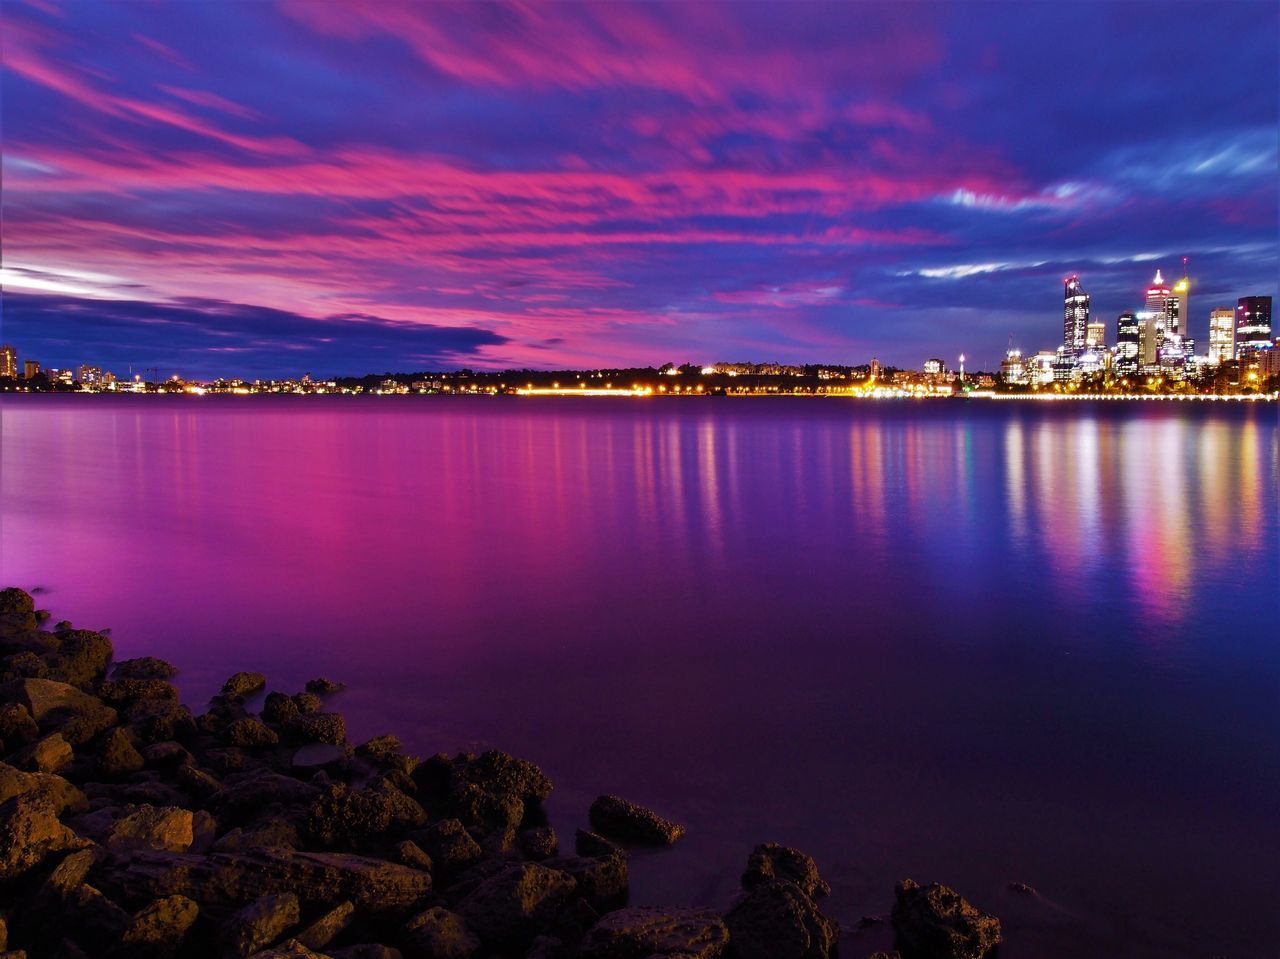 Scenic View Of Lake And Illuminated City Against Sky At Dusk